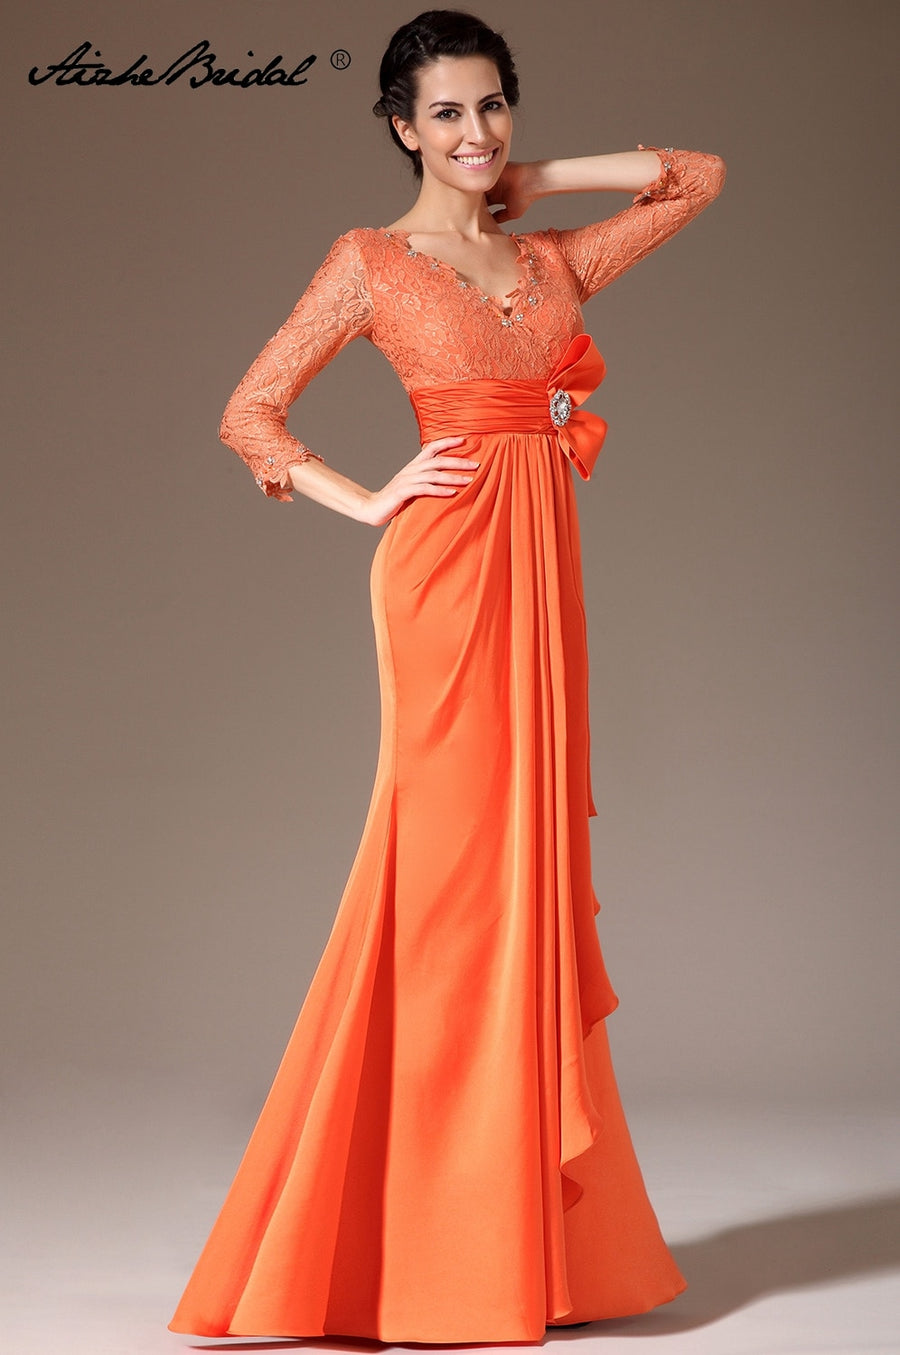 Formal Women's Dresses Mermaid 3/4 Sleeve Orange Chiffon Lace Mother of the Bride Gown Vestidos Madre De La Novia Mother Dress 1